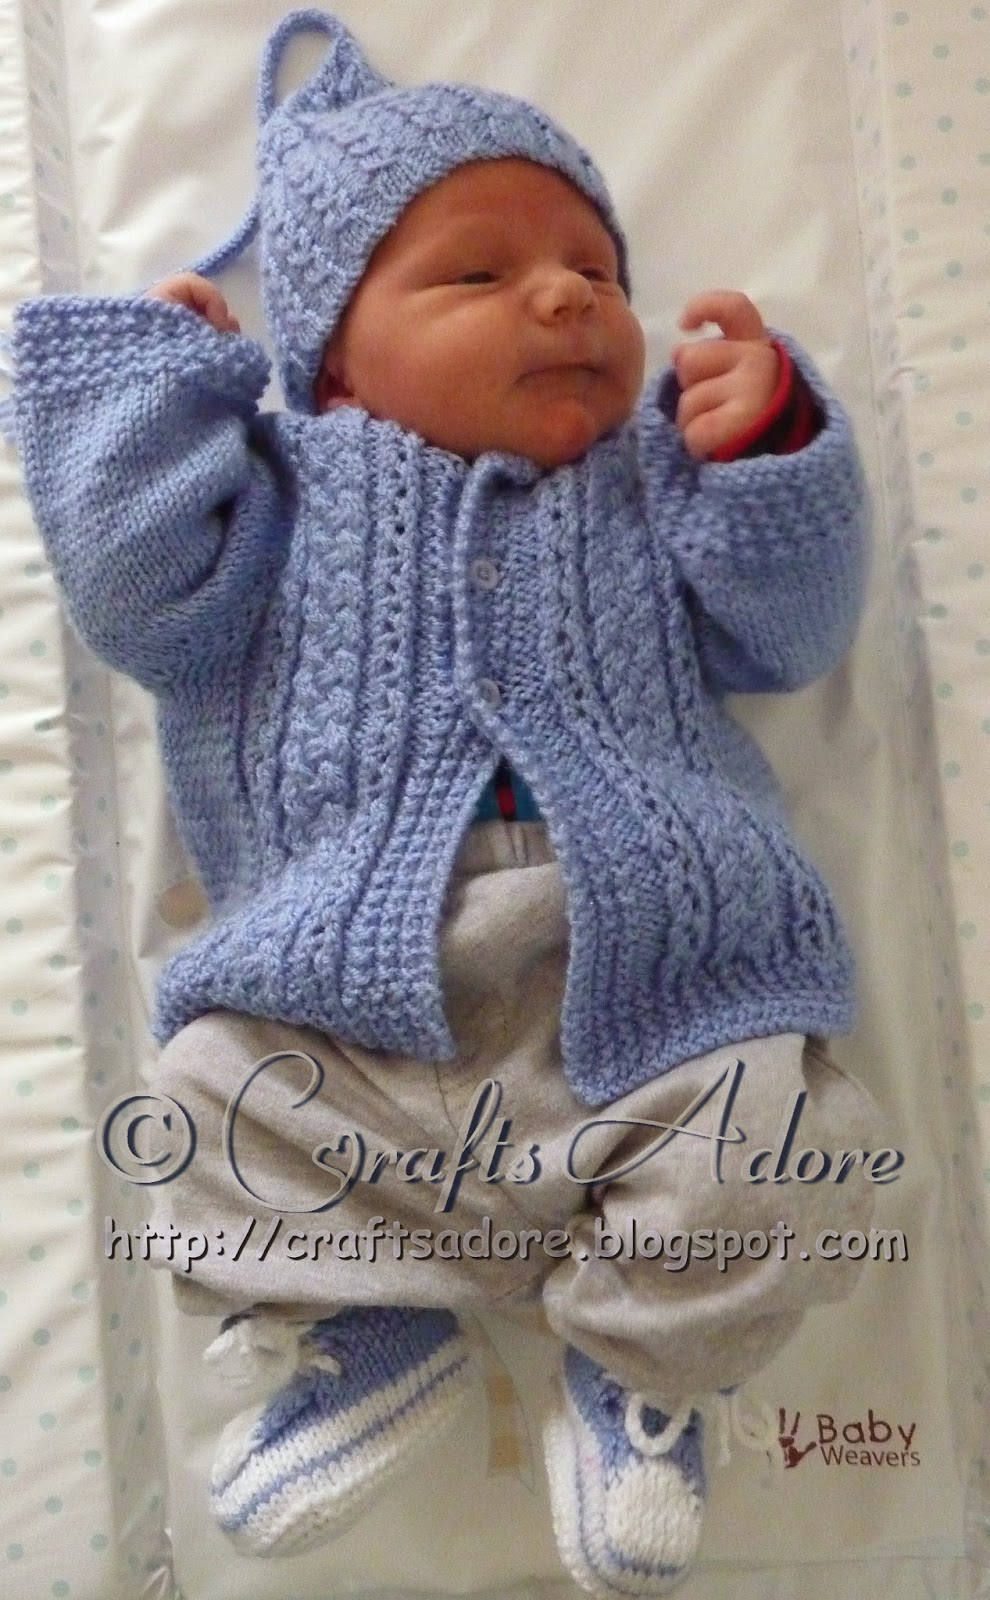 Knitted Baby Patterns Free Online : CraftsAdore: